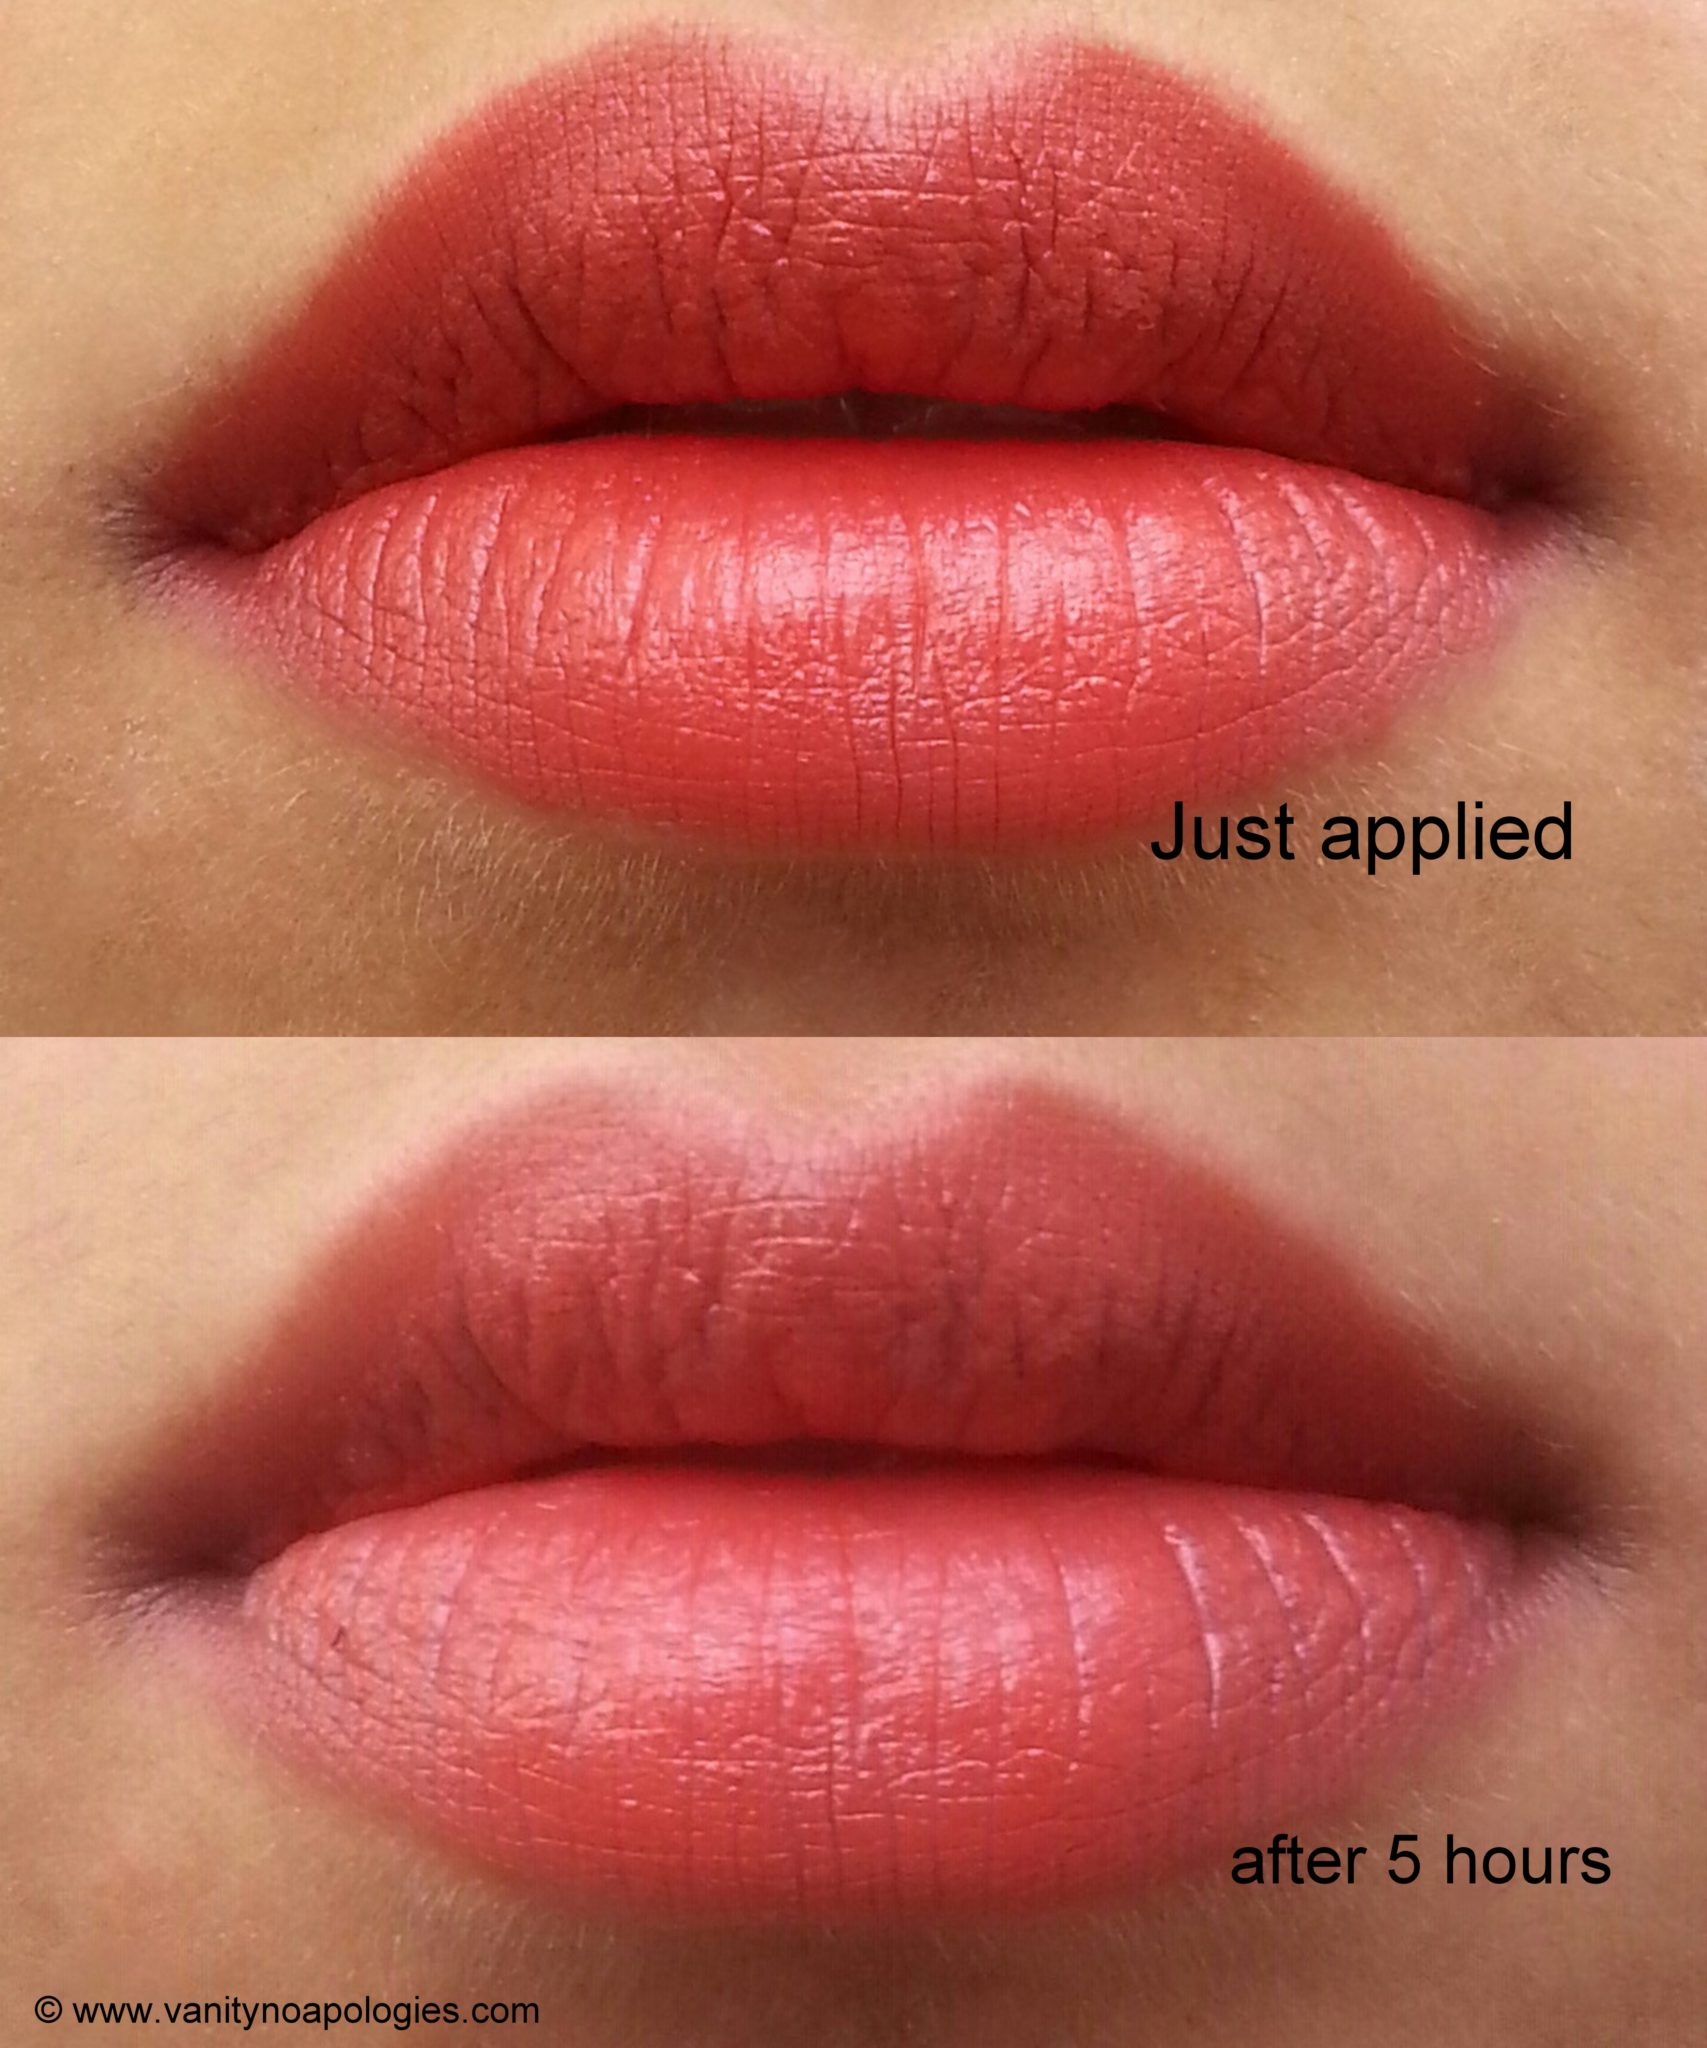 Find great deals on eBay for peach color lipstick. Shop with confidence.